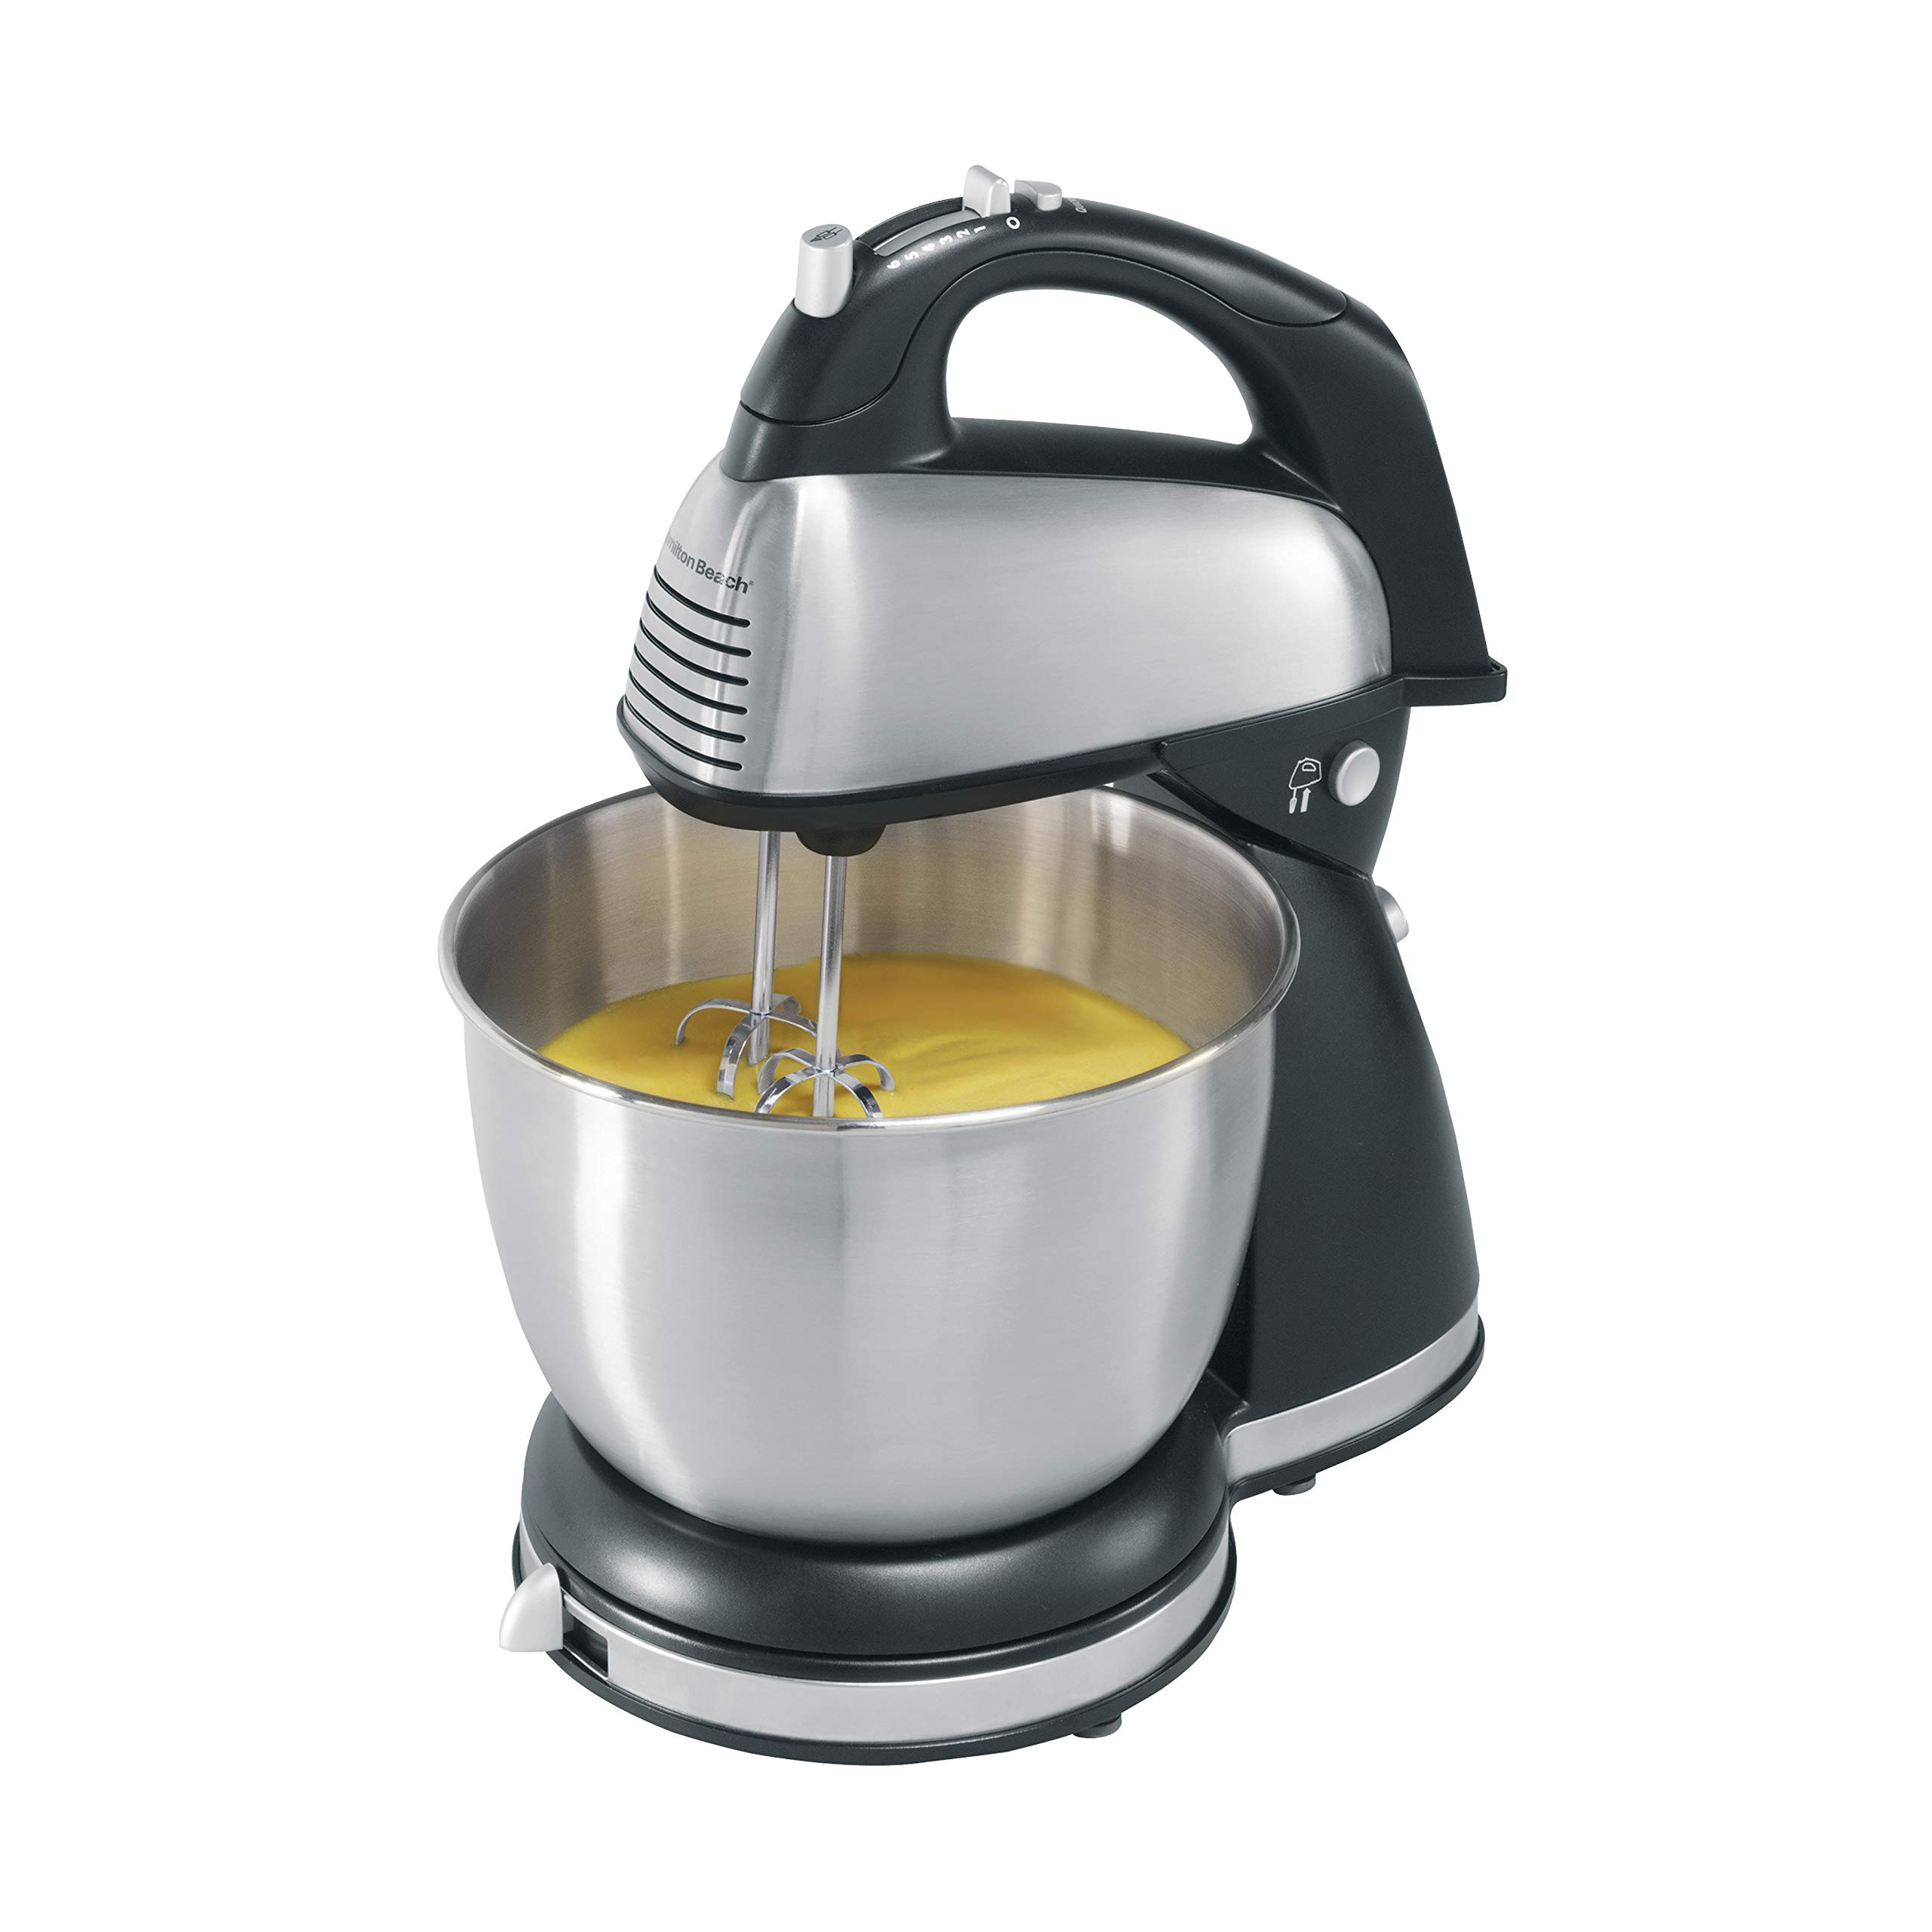 Hamilton Beach Classic Hand and Stand Mixer, 4 Quarts, 6 Speeds with QuickBurst, 290 Watts, Bowl Rest, Black and Stainless (64650), by Hamilton Beach